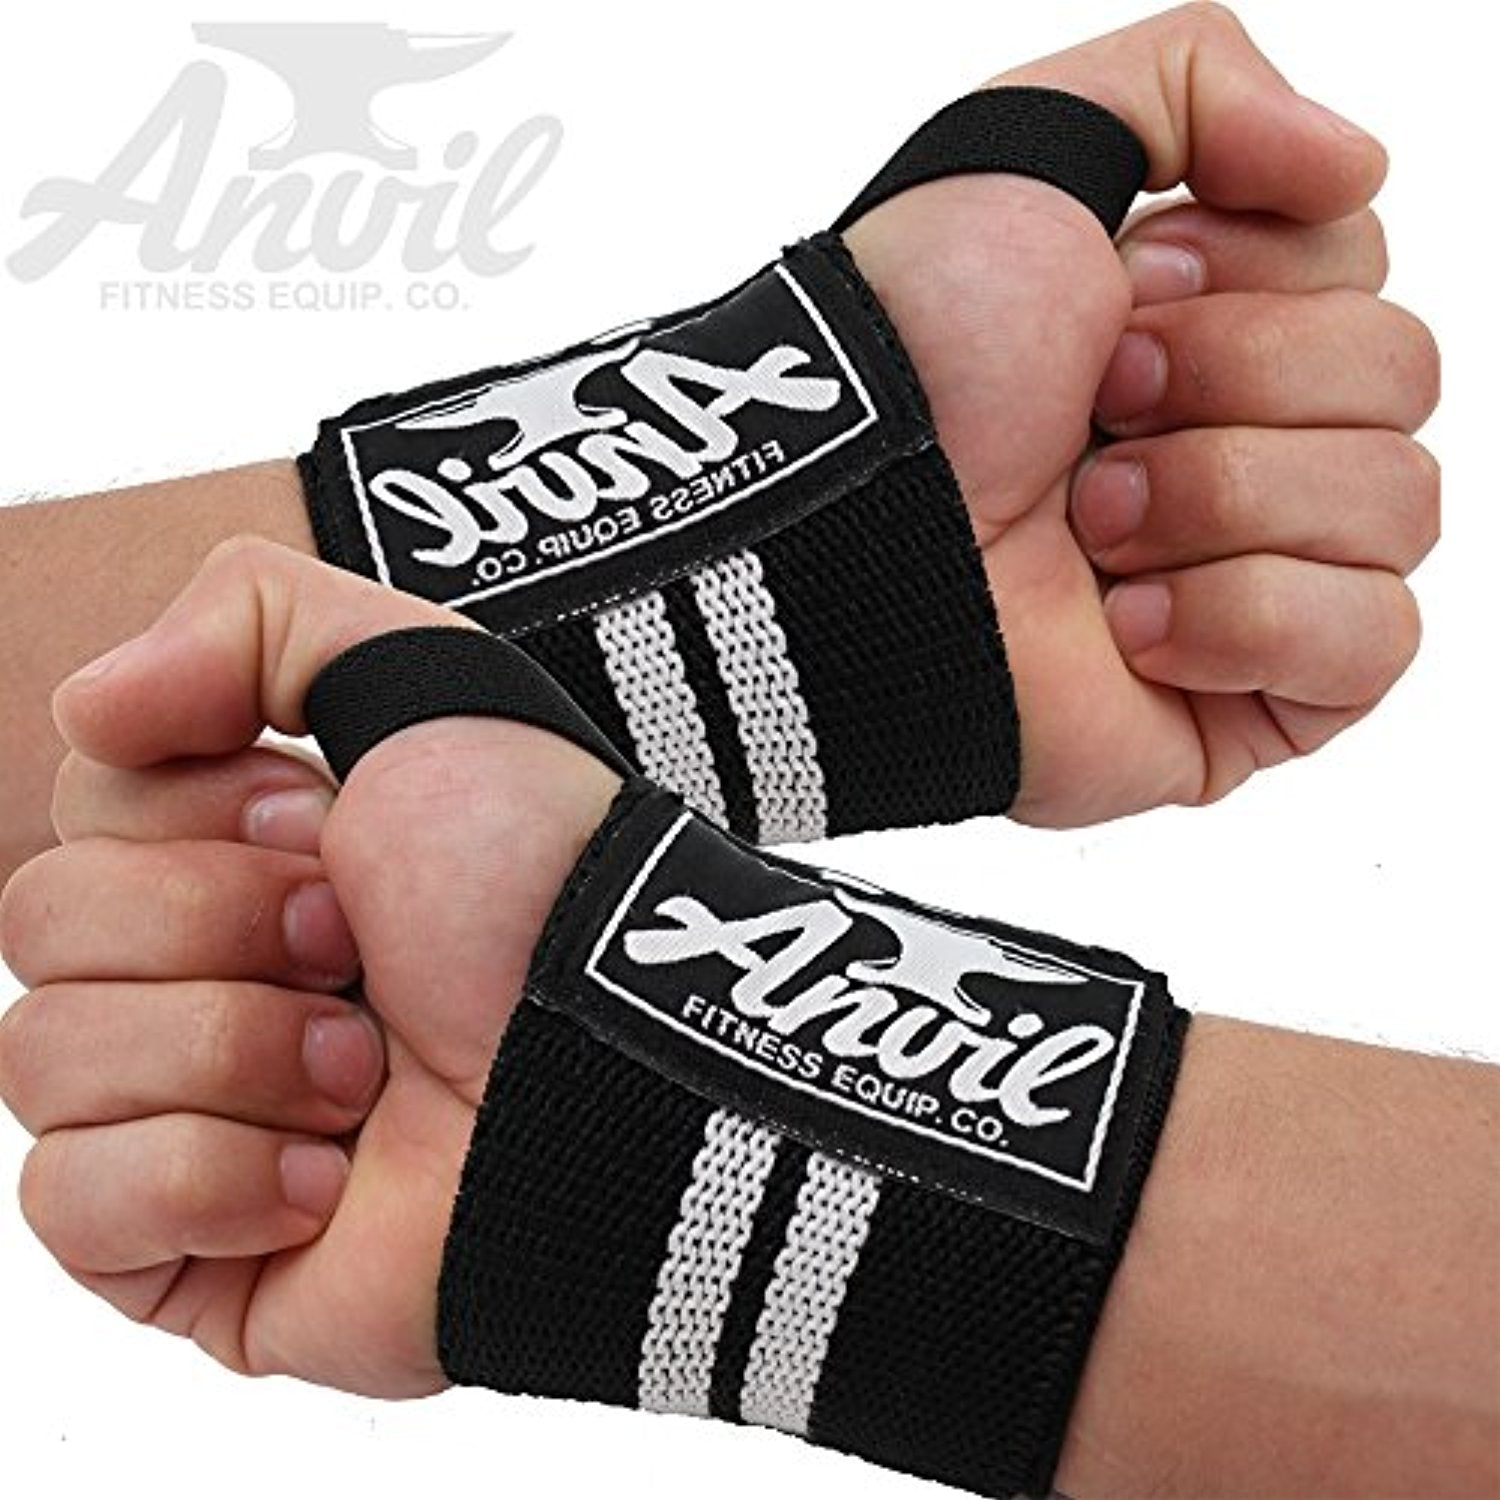 Weightlifting Wrist Wraps - High quality Pair of Adjustable Elastic Wrist Wraps - Everyday Crosstrain